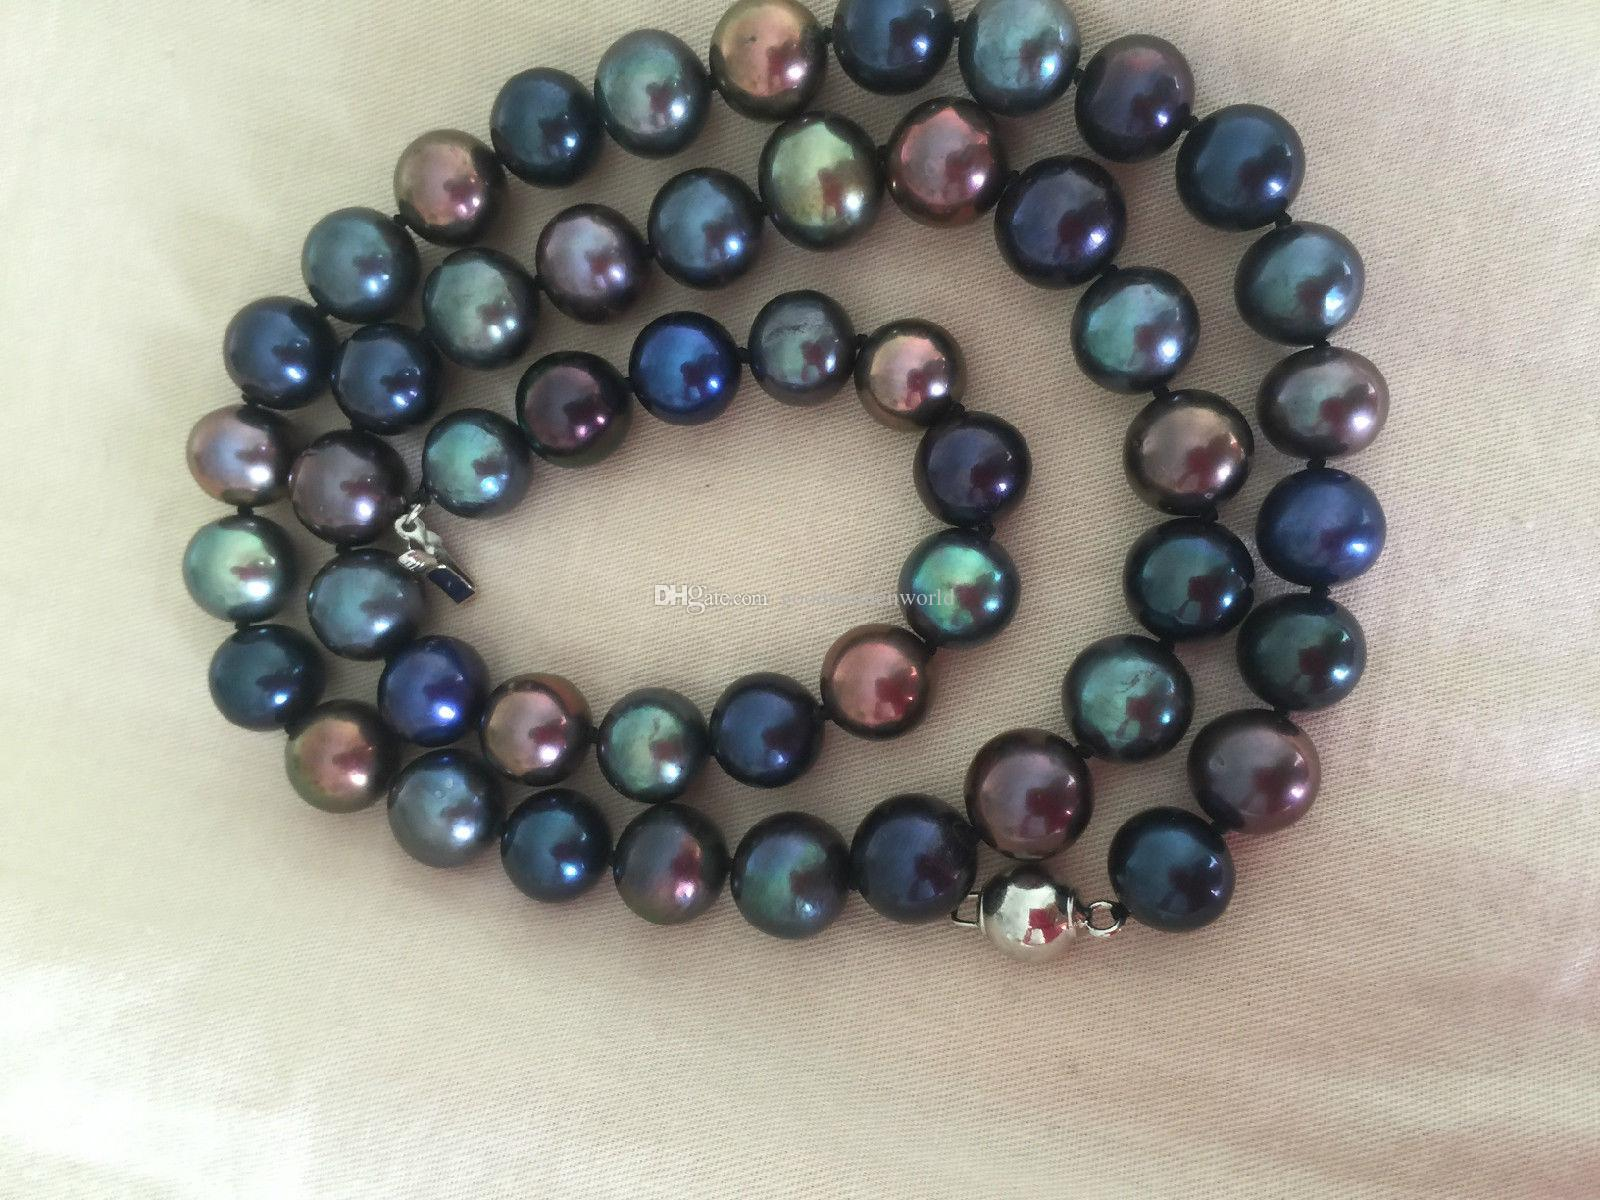 Fine Pearls Jewelry stunning9-10mm tahitian multicolor black green red pearl necklace 19inch